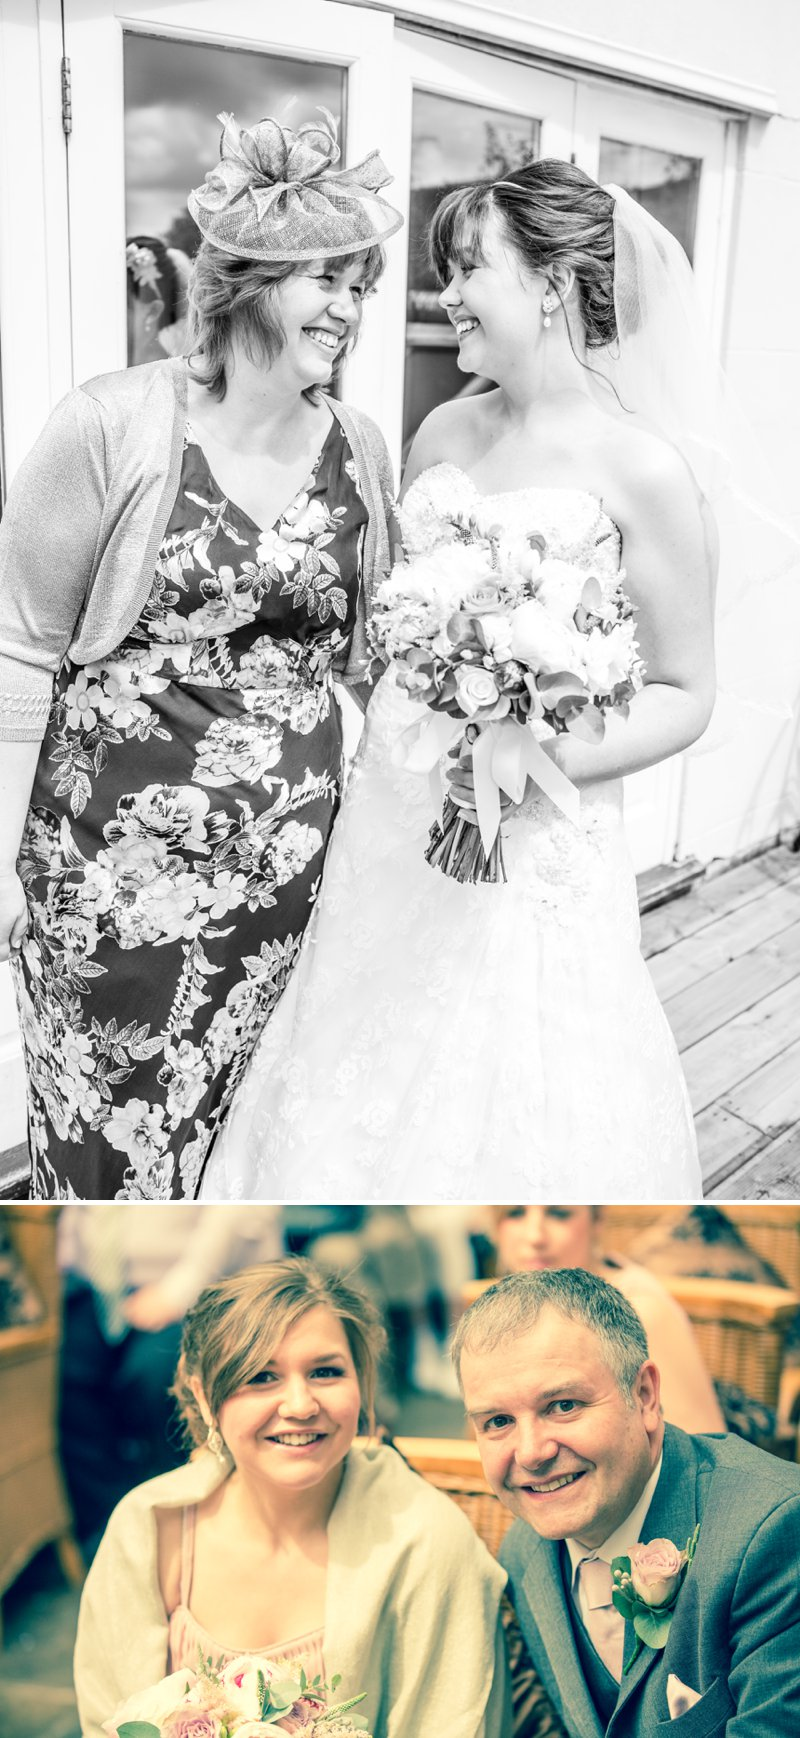 Elegant Wedding At Stanwell House Hotel In Hampshire With Bride In Phil Collins Bridal Gown And Groom In Moss Suit With A Blush Pink Colour Scheme And Comic Book Hero Details Images From Beki Young Wedding Photography 6